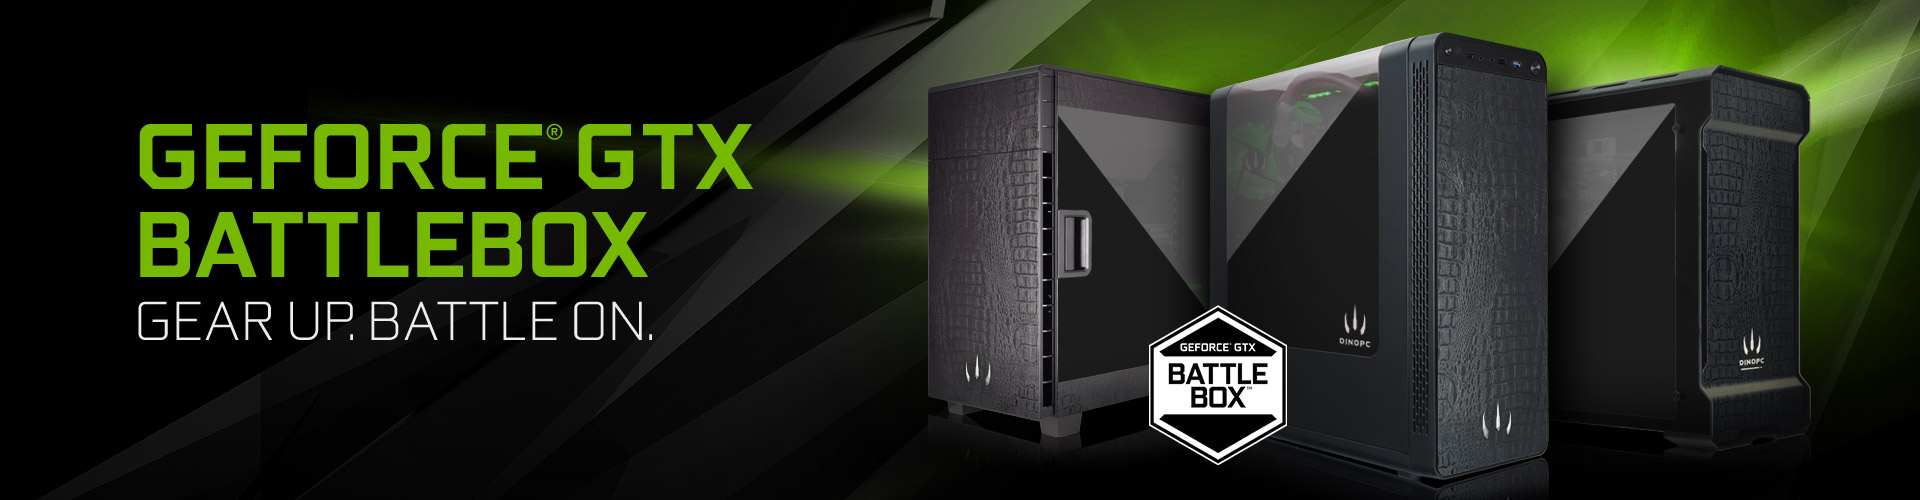 NVIDIA Battlebox PCs